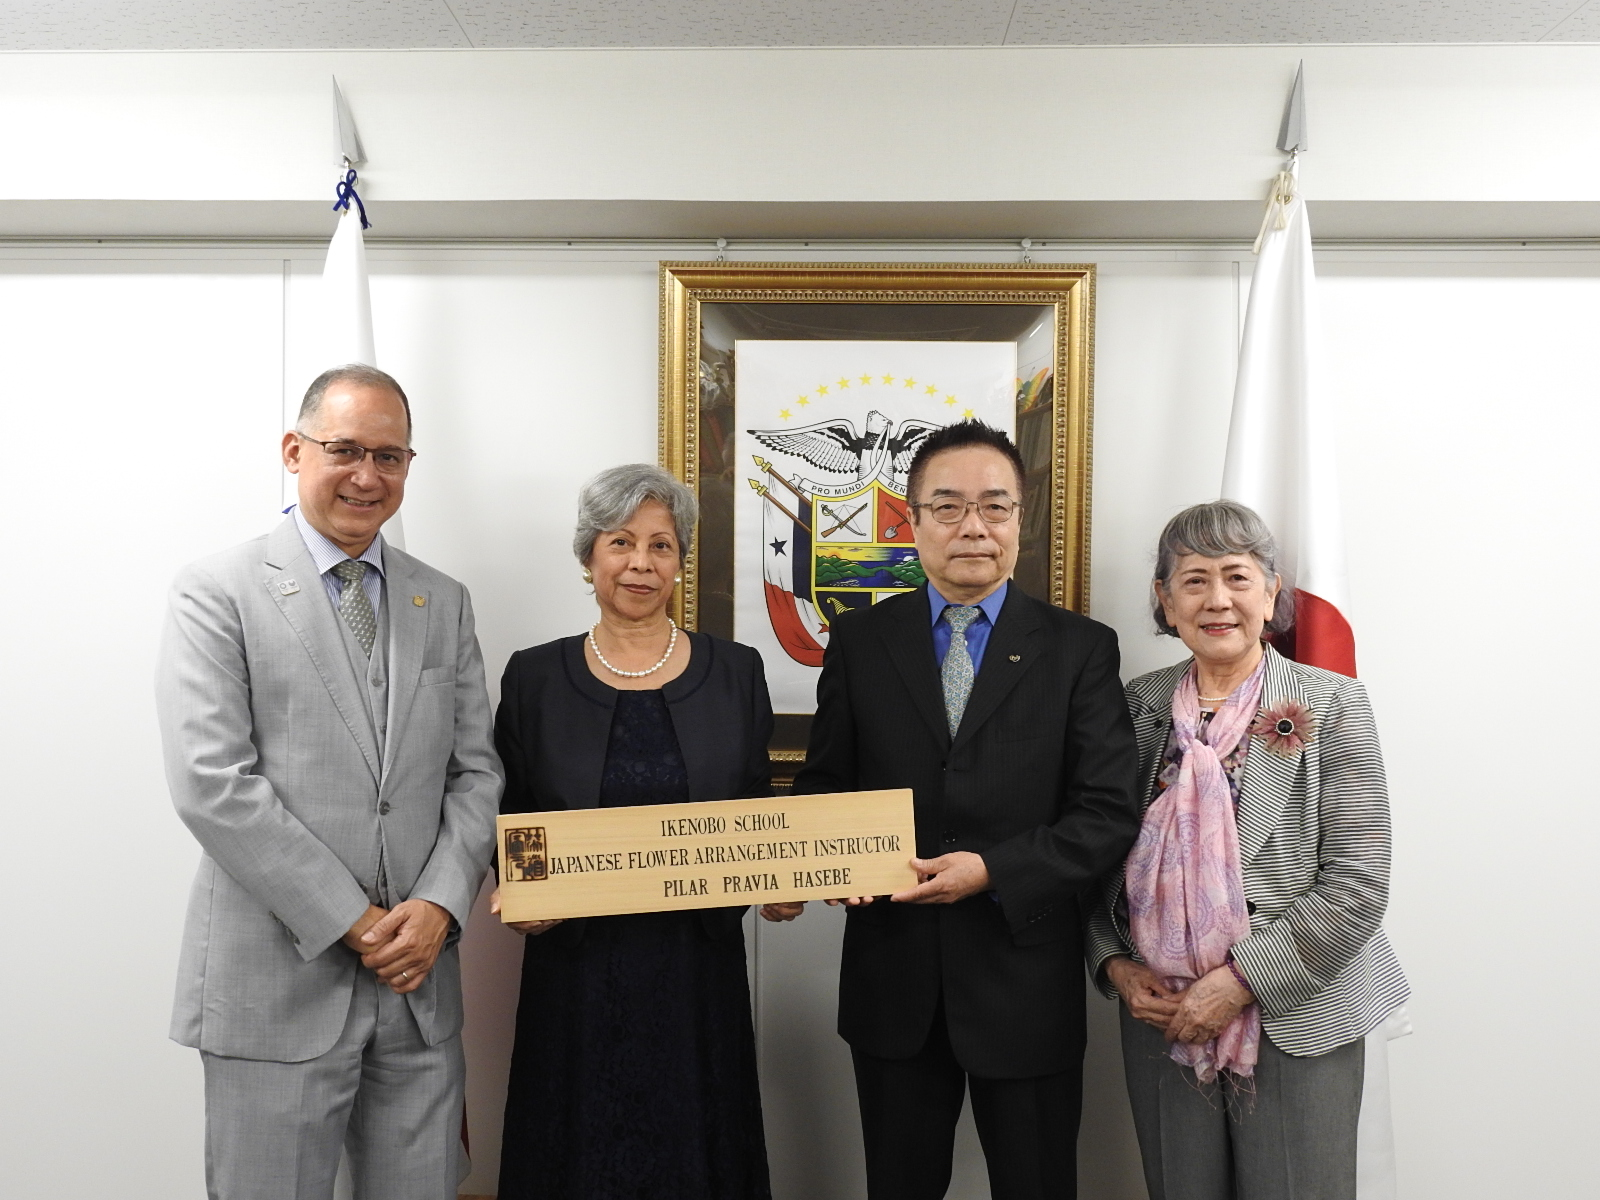 From the left, Ambassador of Panama in Japan, Mrs. Pilar Hasebe, President Kubota and Mrs. Abe, Teacher of Ikebana, Ikenobo.